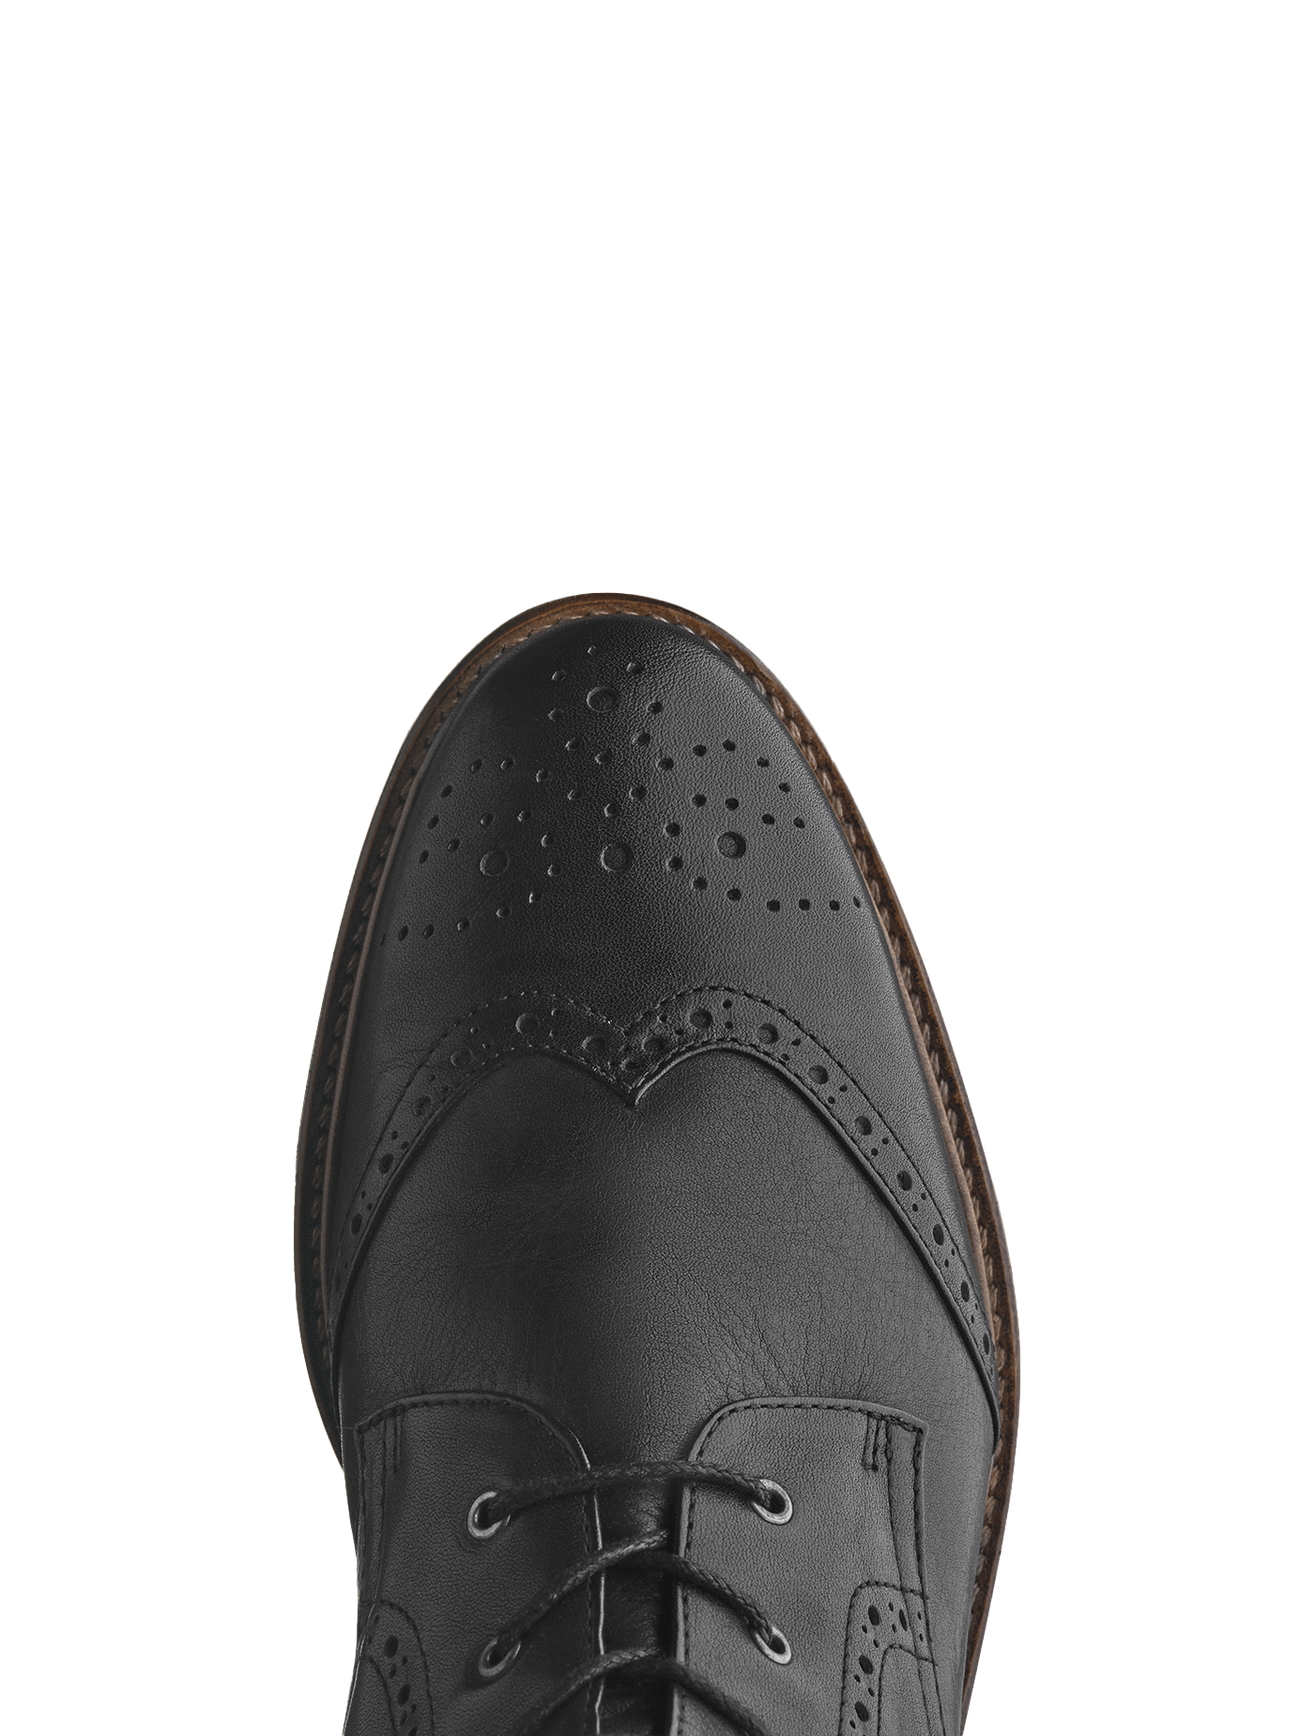 With stylish black leather brogue detailing over the classic round toe shape.